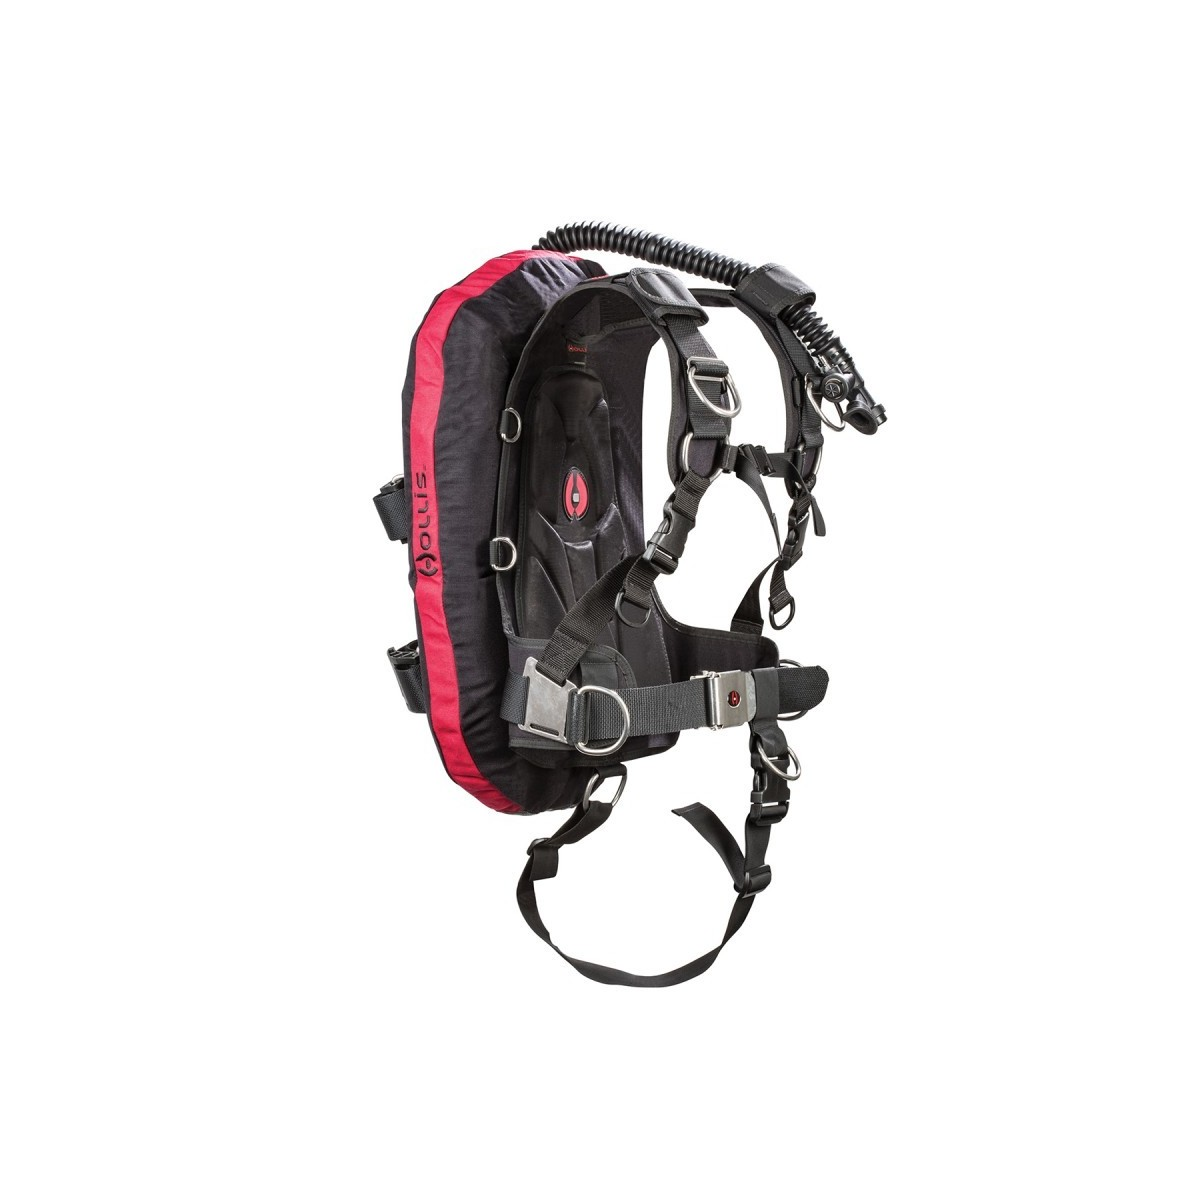 New Hollis HTS II Harness Technical System For Scuba Diving